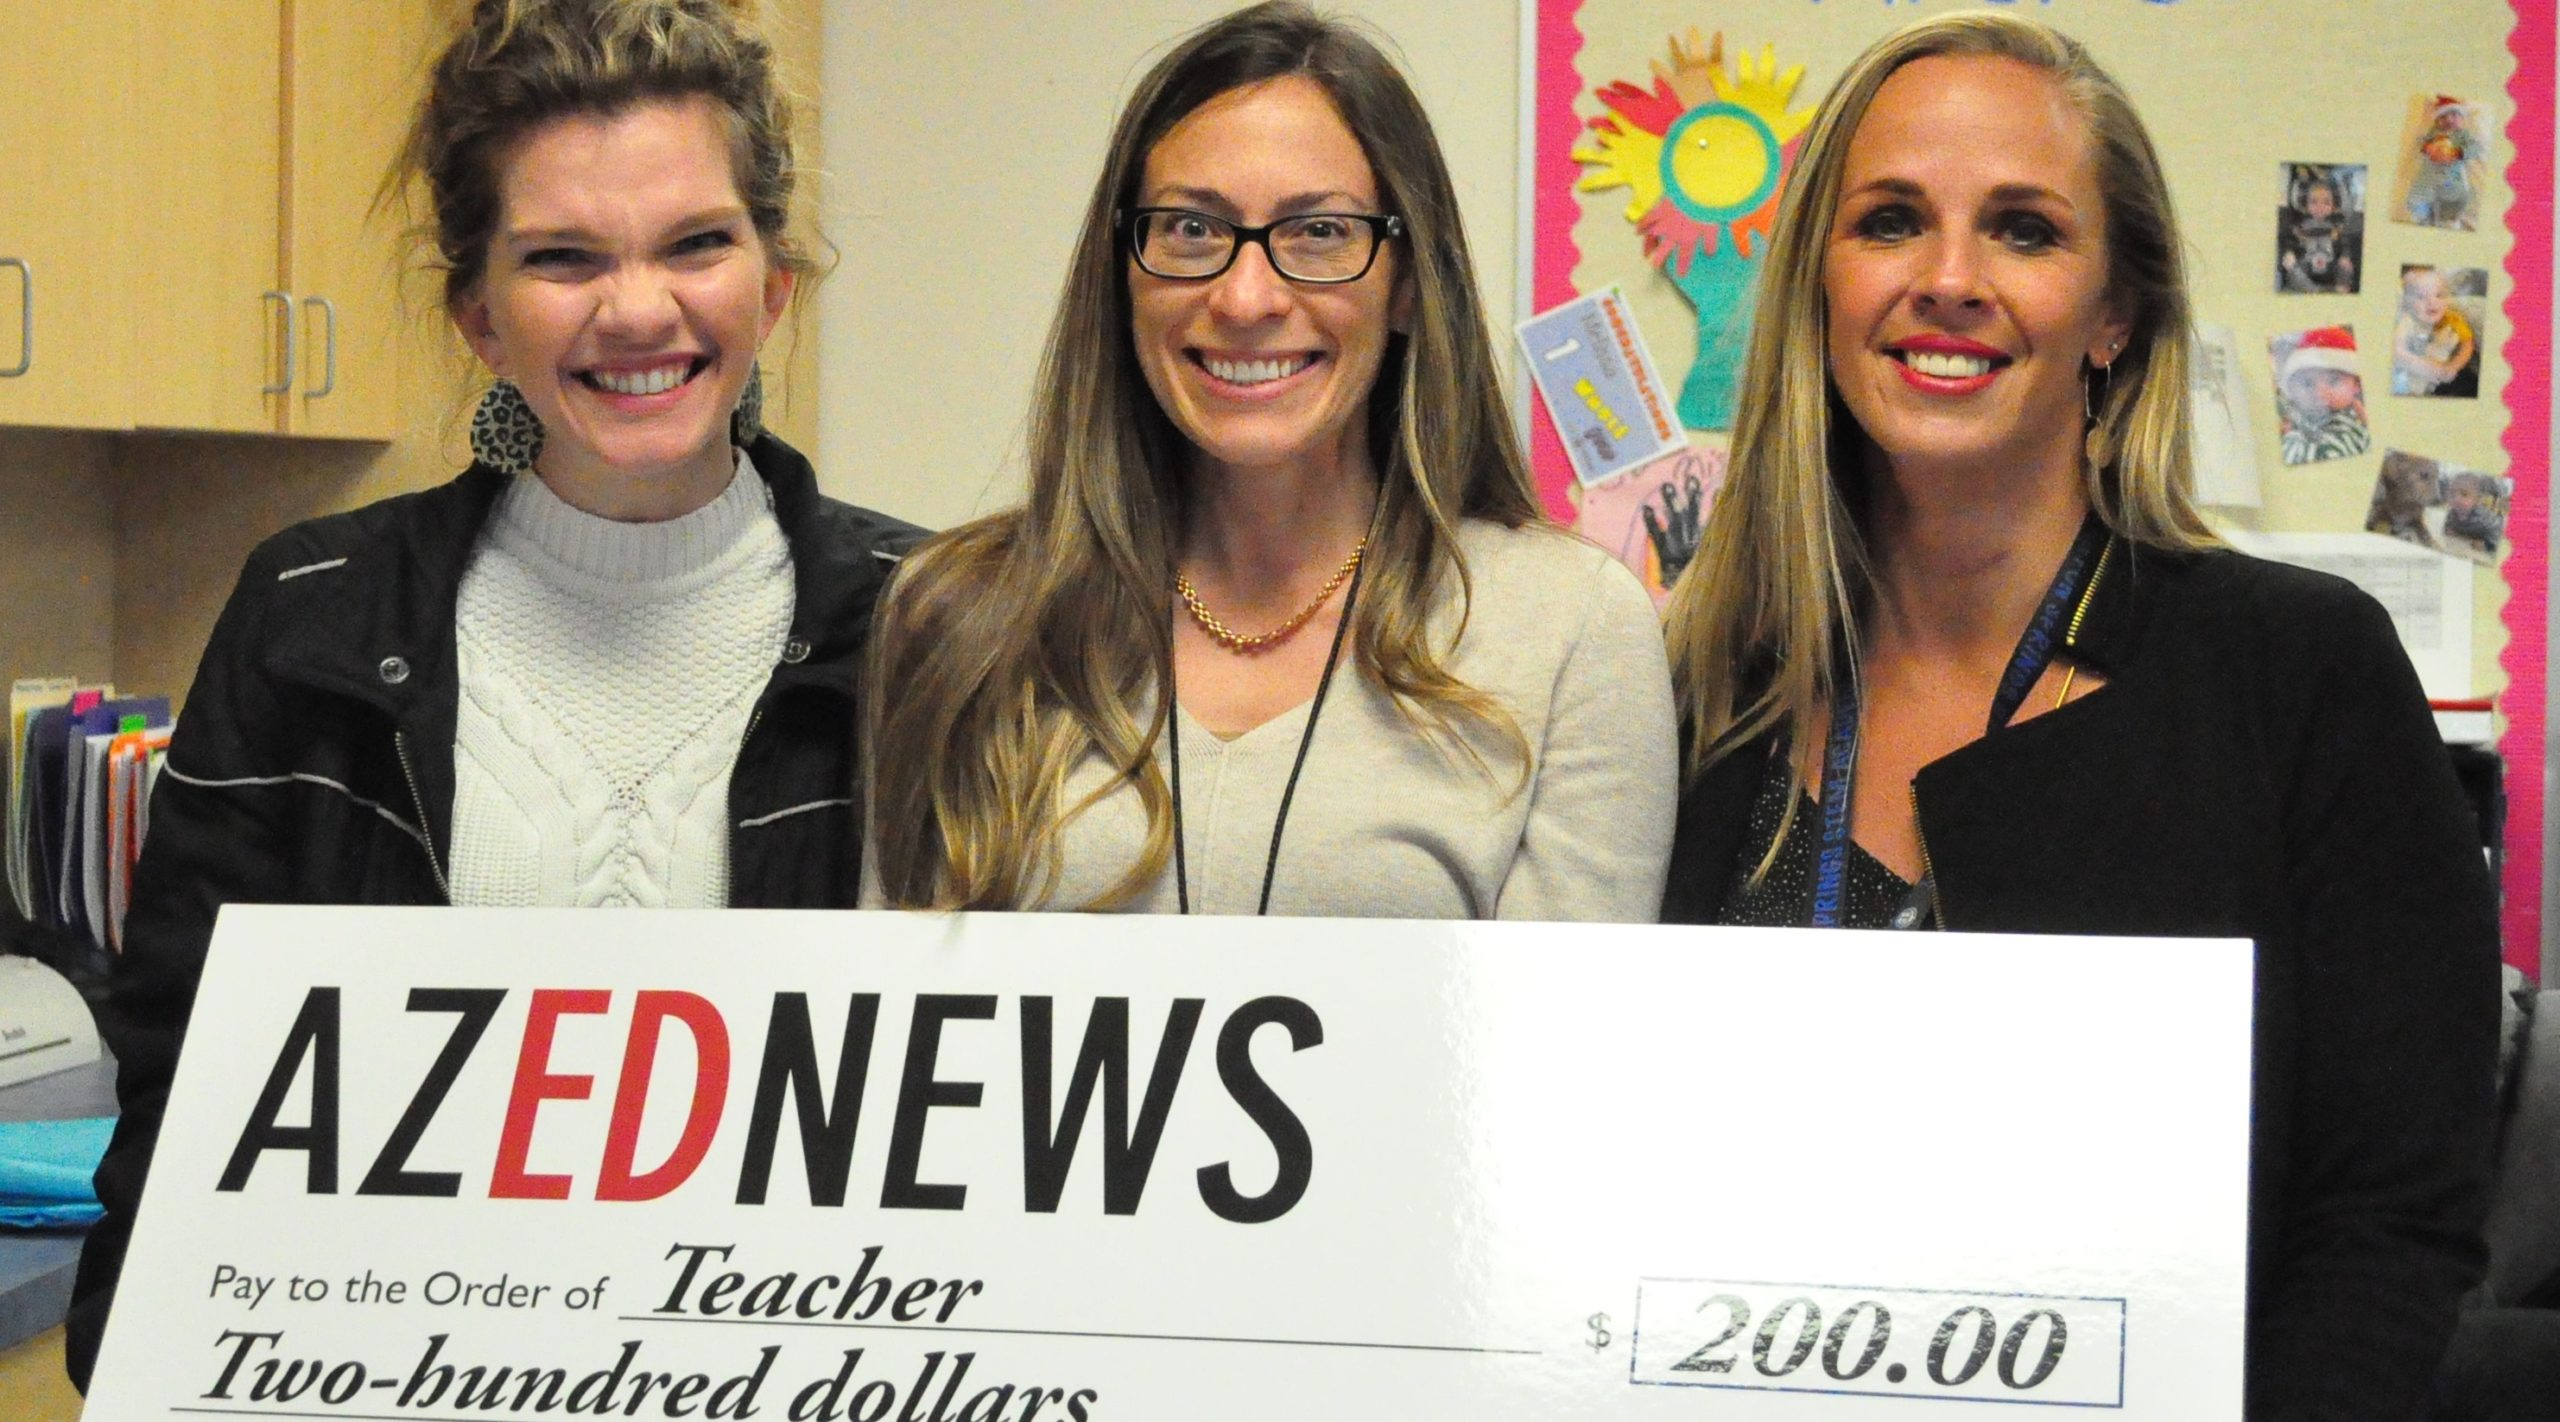 Canyon Springs Special Education Teacher And Student Support Services Coordinator LaRae Klay, Center, Accepts The AZEdNews Teacher Classroom Grant Check From Canyon Springs STEM Academy Assistant Principal April Fraley, Right. Photo By Lisa Irish/AZEdNews